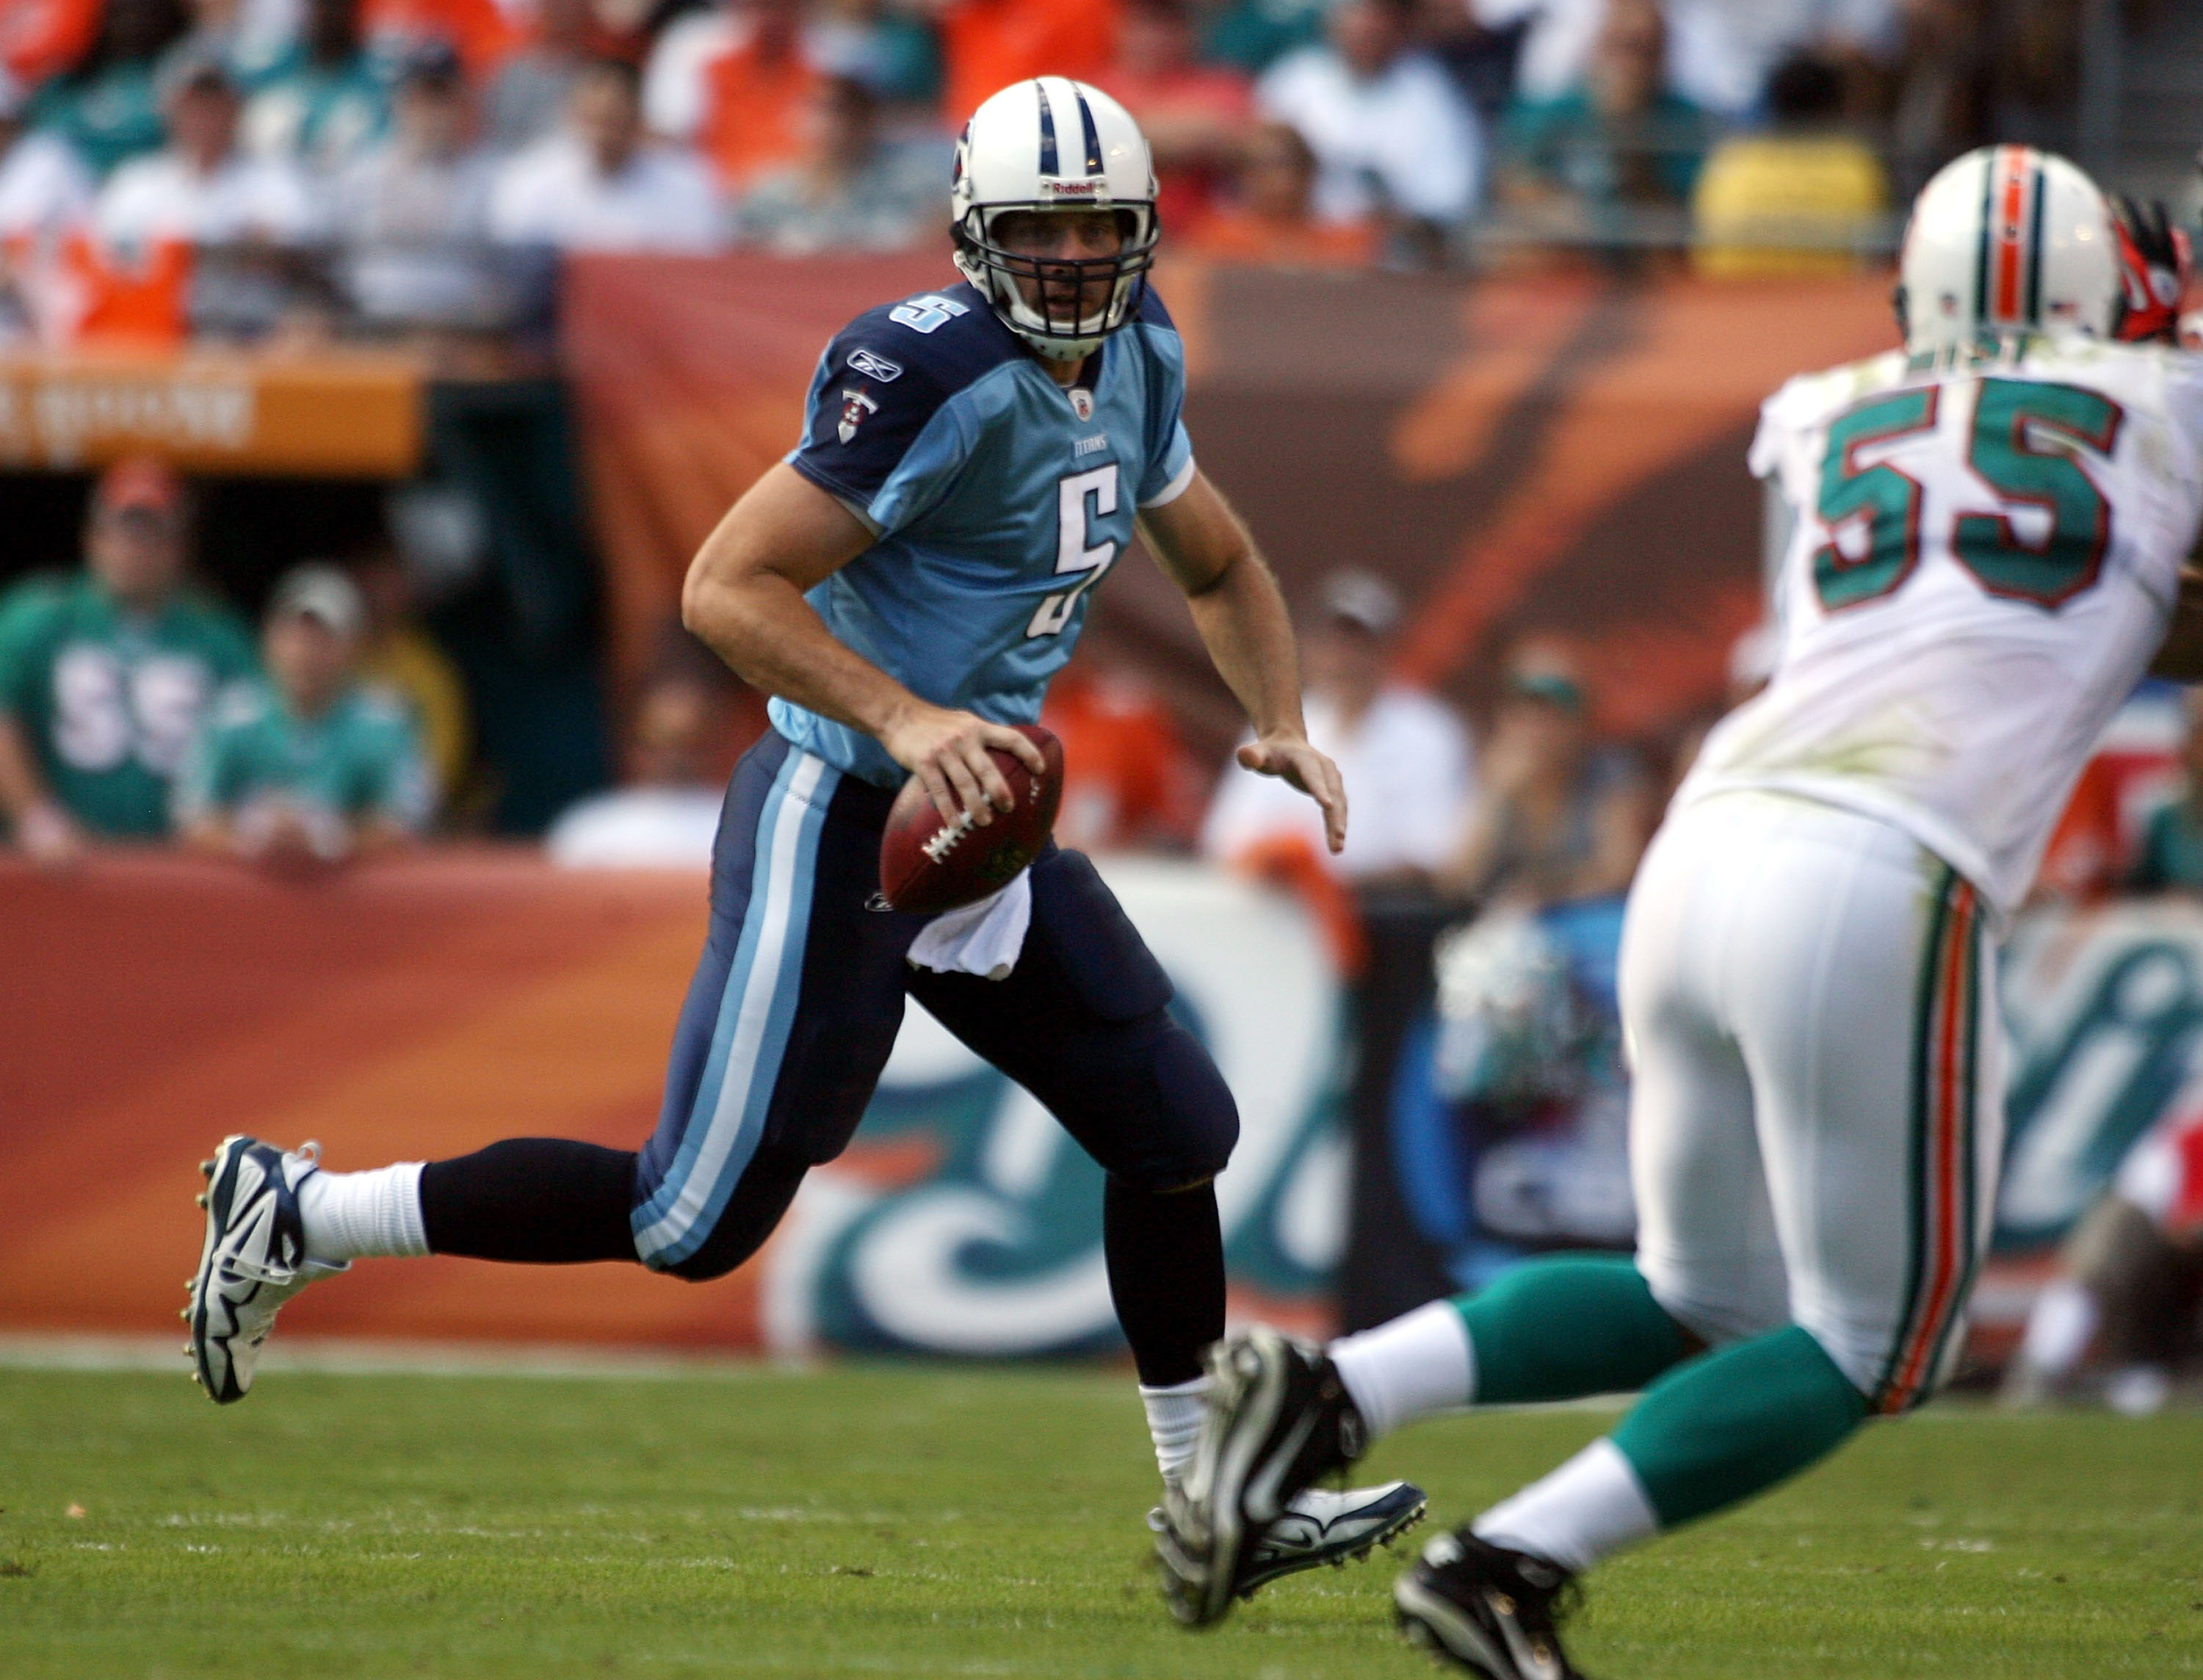 MIAMI - NOVEMBER 14:  Quarterback Kerry Collins #5 of the Tennessee Titans runs against the Miami Dolphins at Sun Life Stadium on November 14, 2010 in Miami, Florida.  (Photo by Marc Serota/Getty Images)